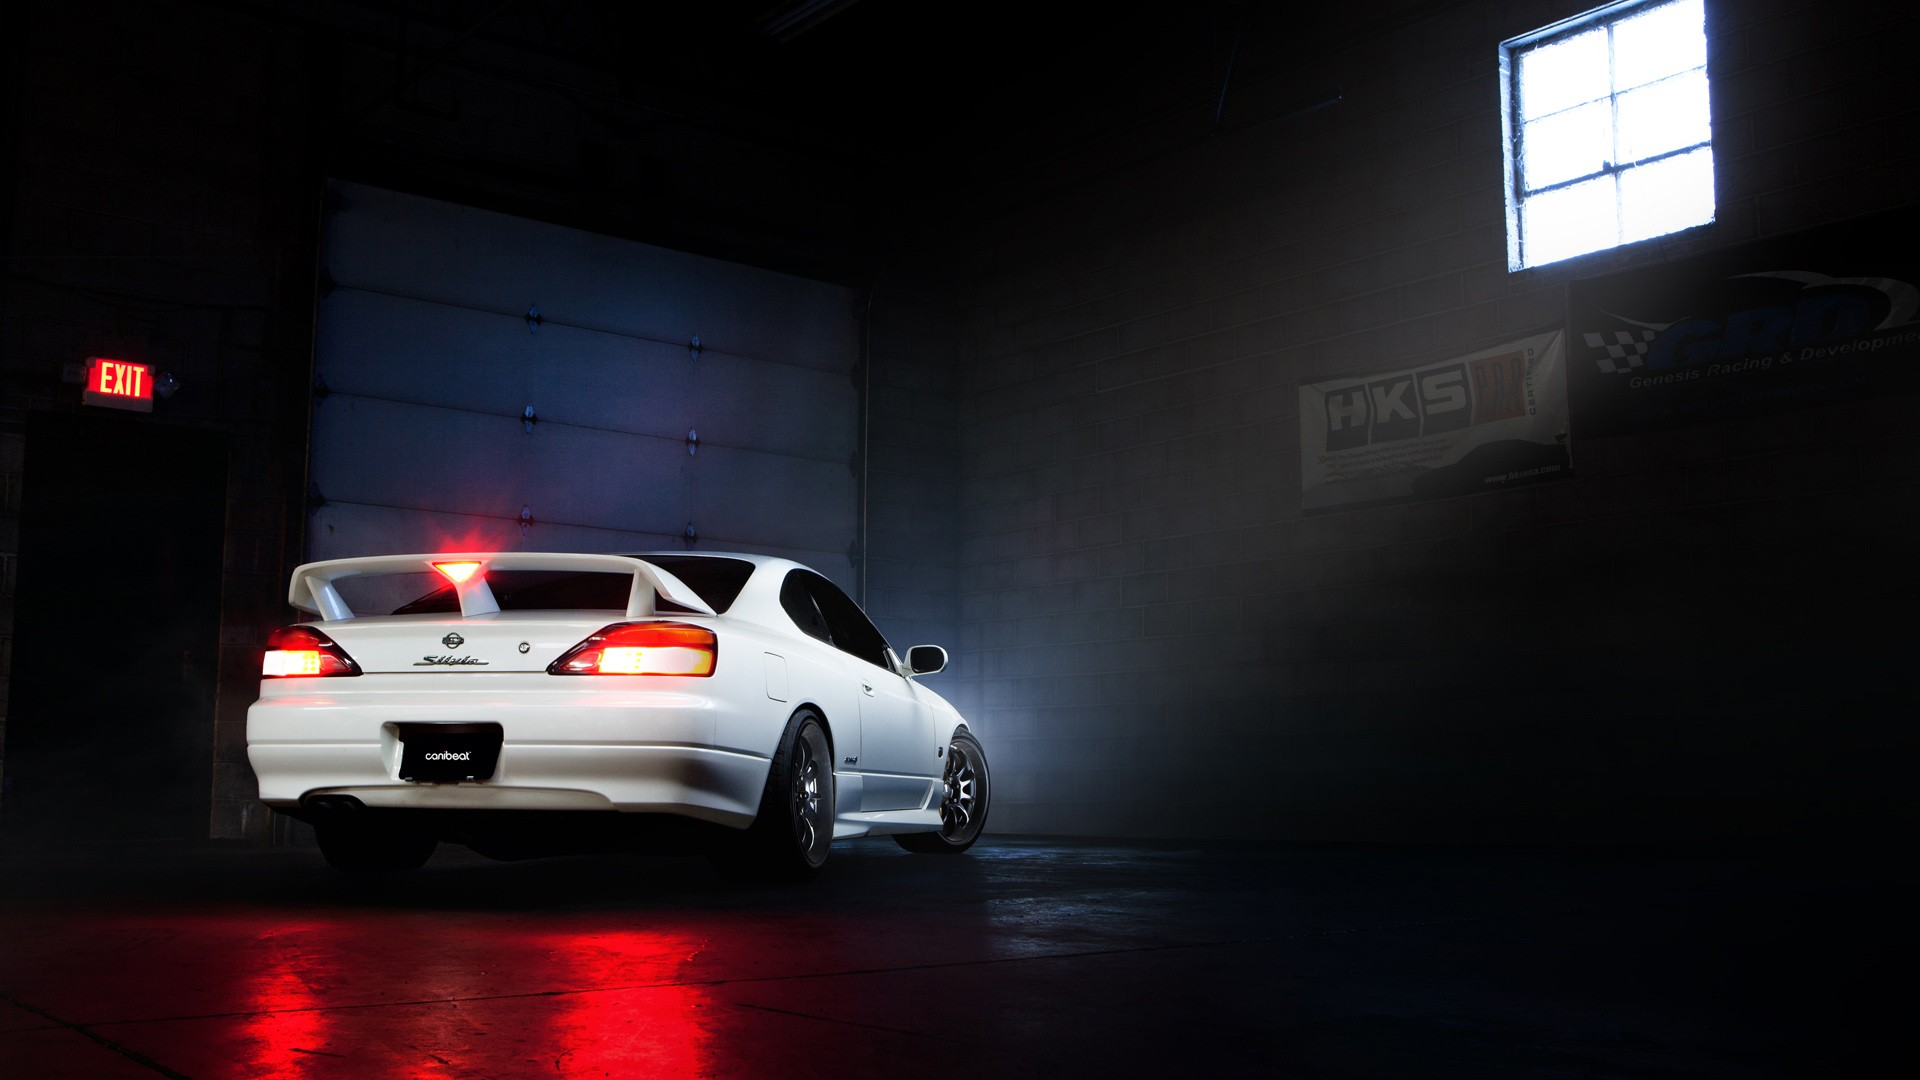 Retro Car Home Wallpaper Nissan Silvia S15 Jdm Car S15 Silvia Wallpapers Hd